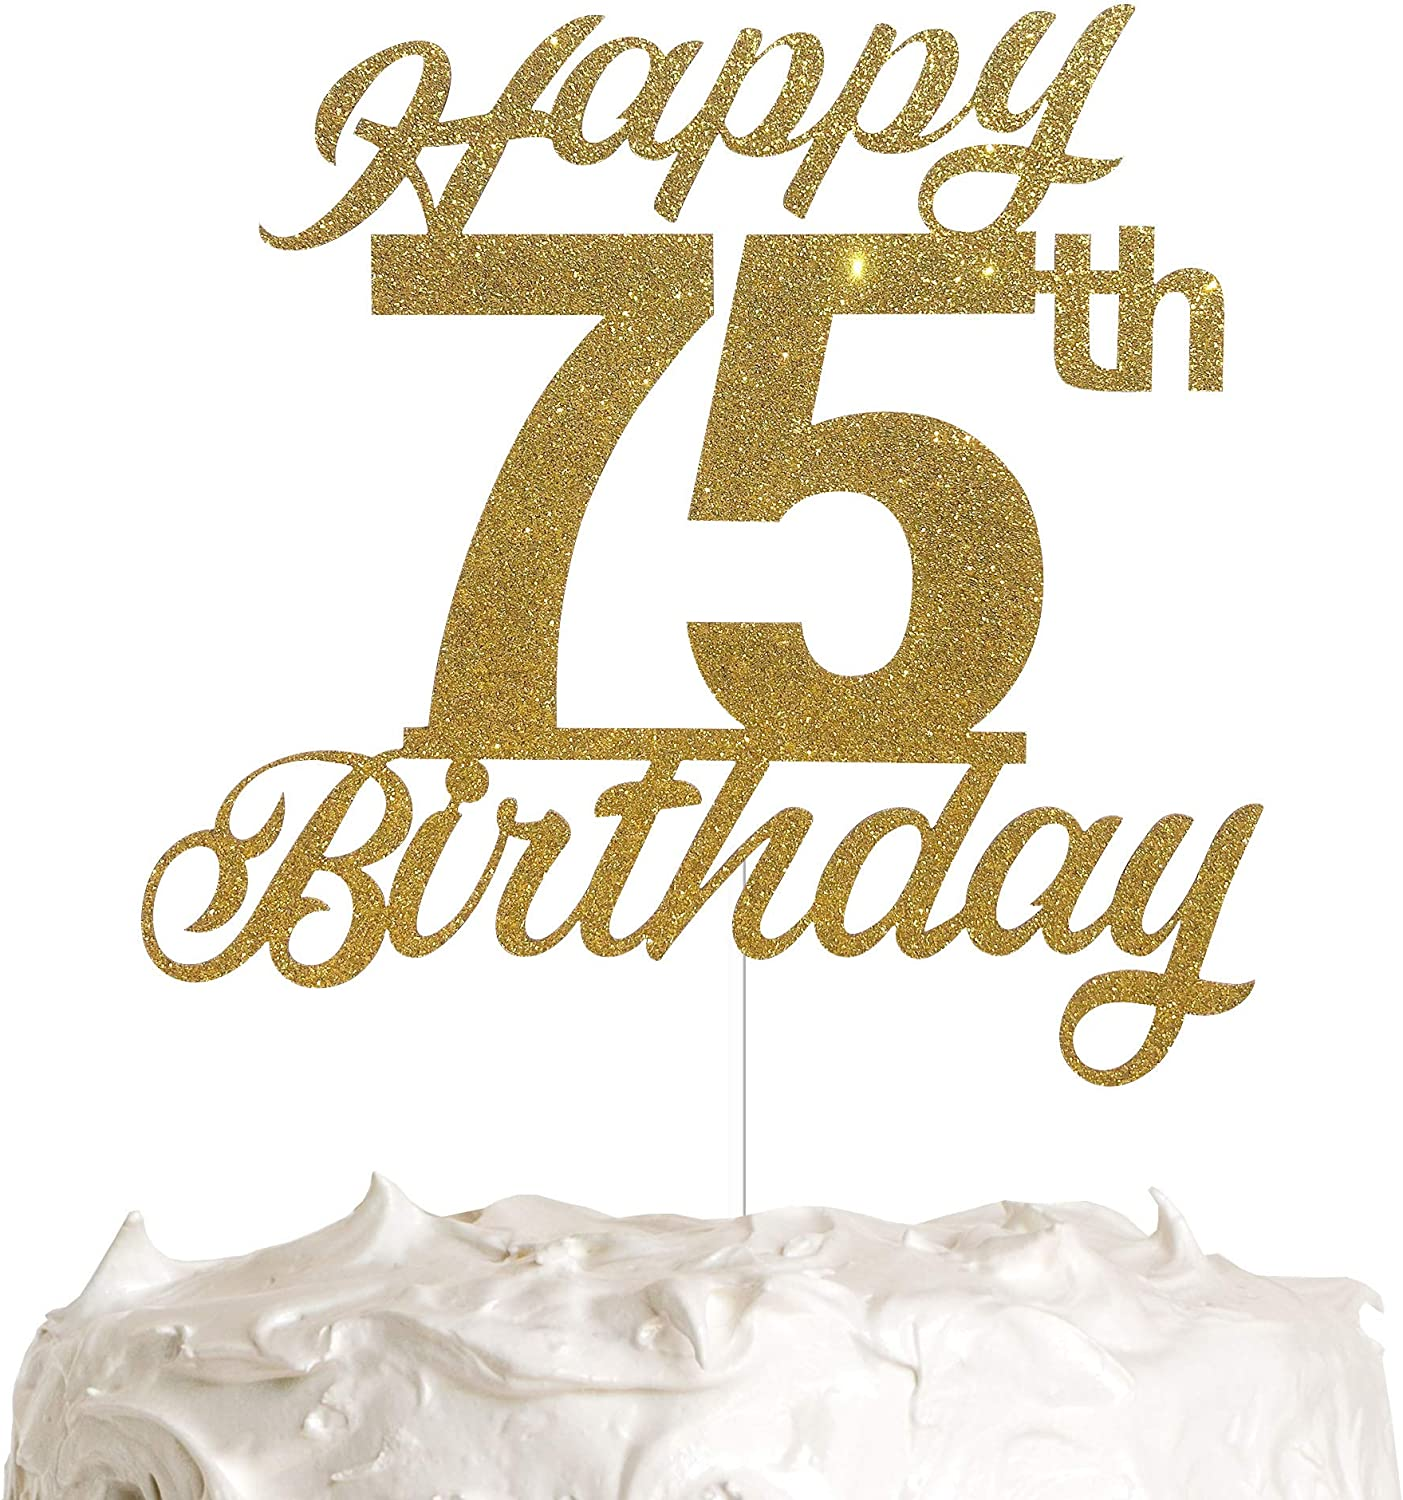 75th Birthday Cake Topper, Birthday Party Decorations with Premium Gold Glitter